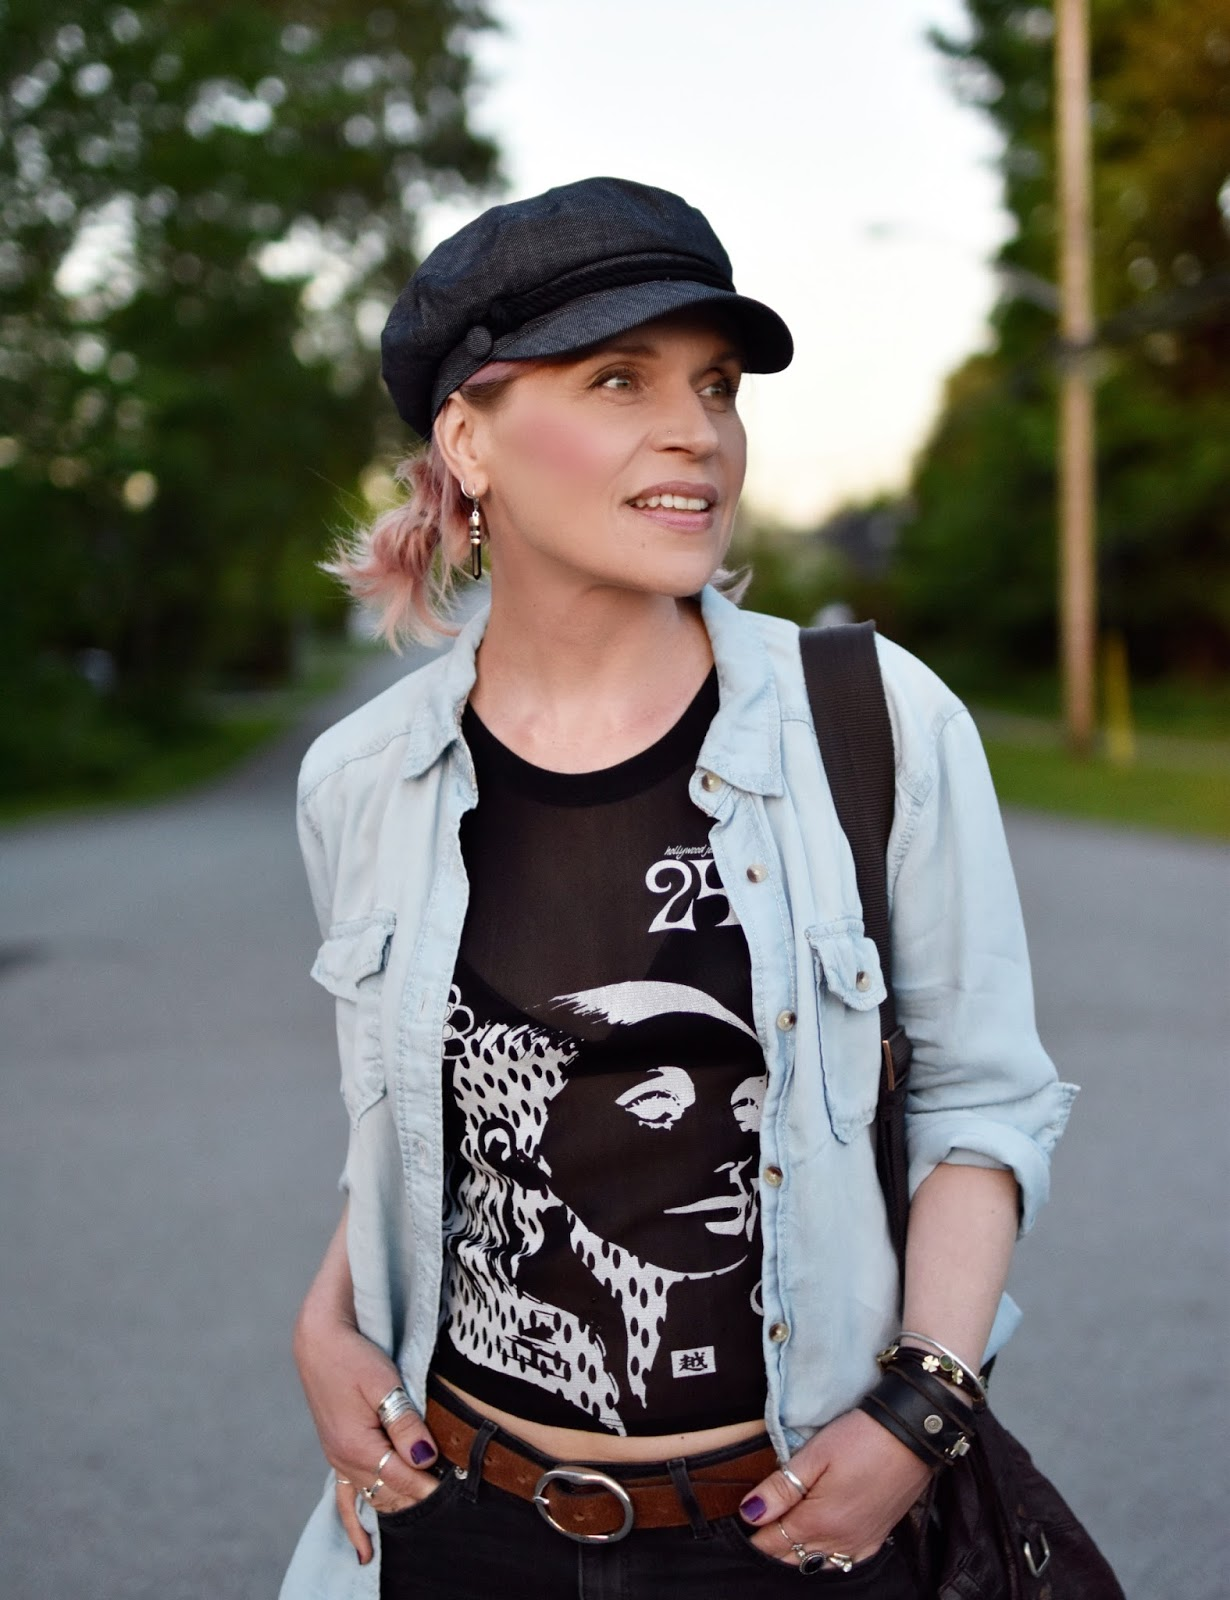 Monika Faulkner outfit inspiration - graphic top, chambray shirt, baker boy cap